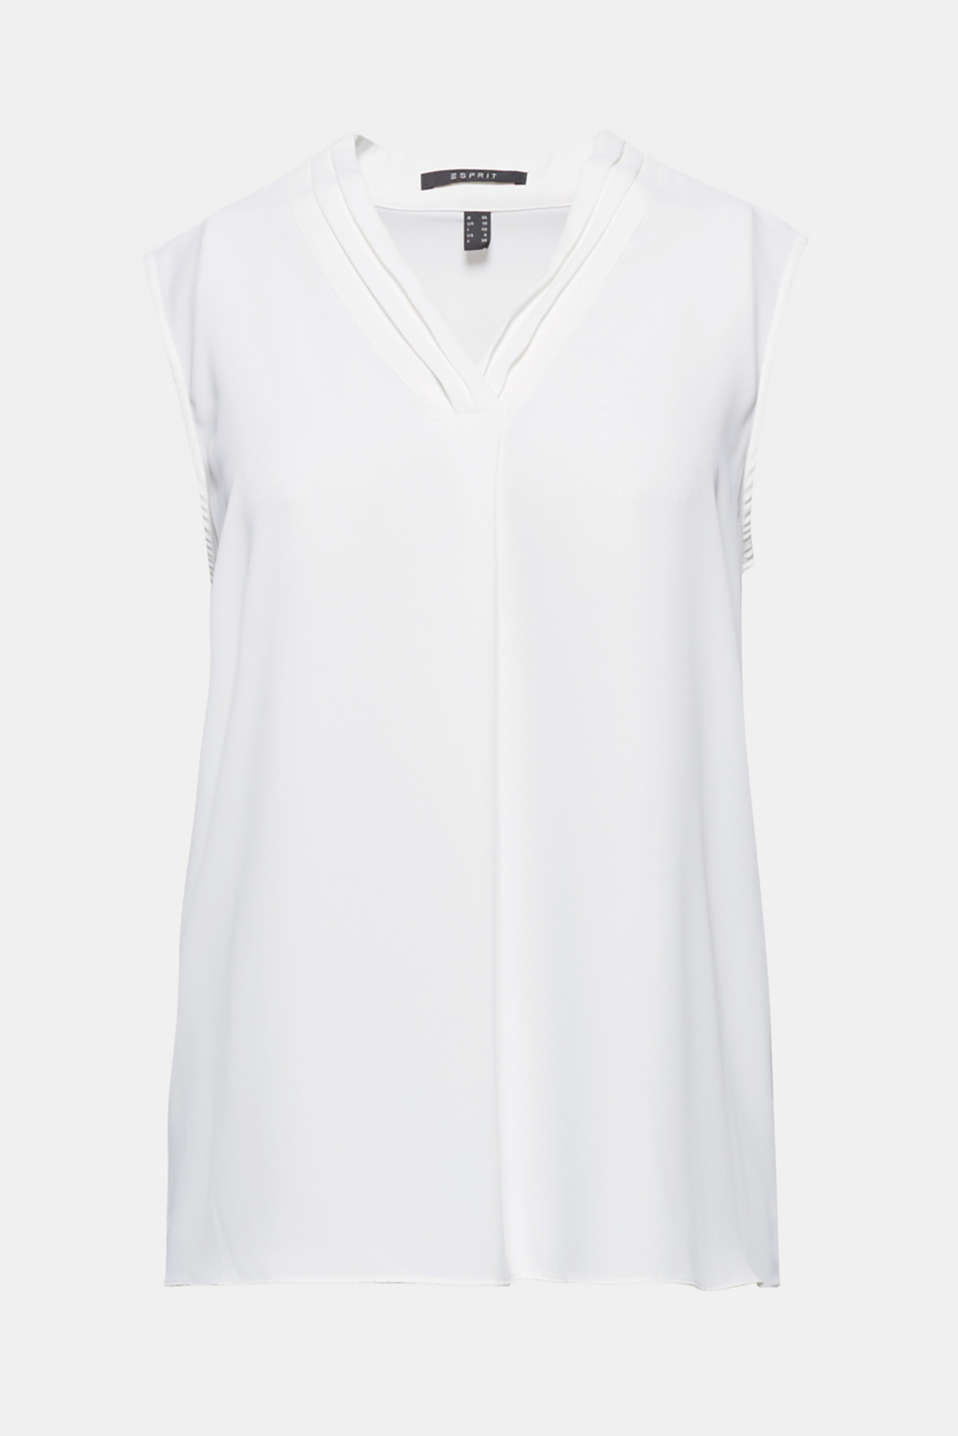 This blouse top with narrow pintucks on the feminine V-neckline is versatile, timelessly modern and feather light.